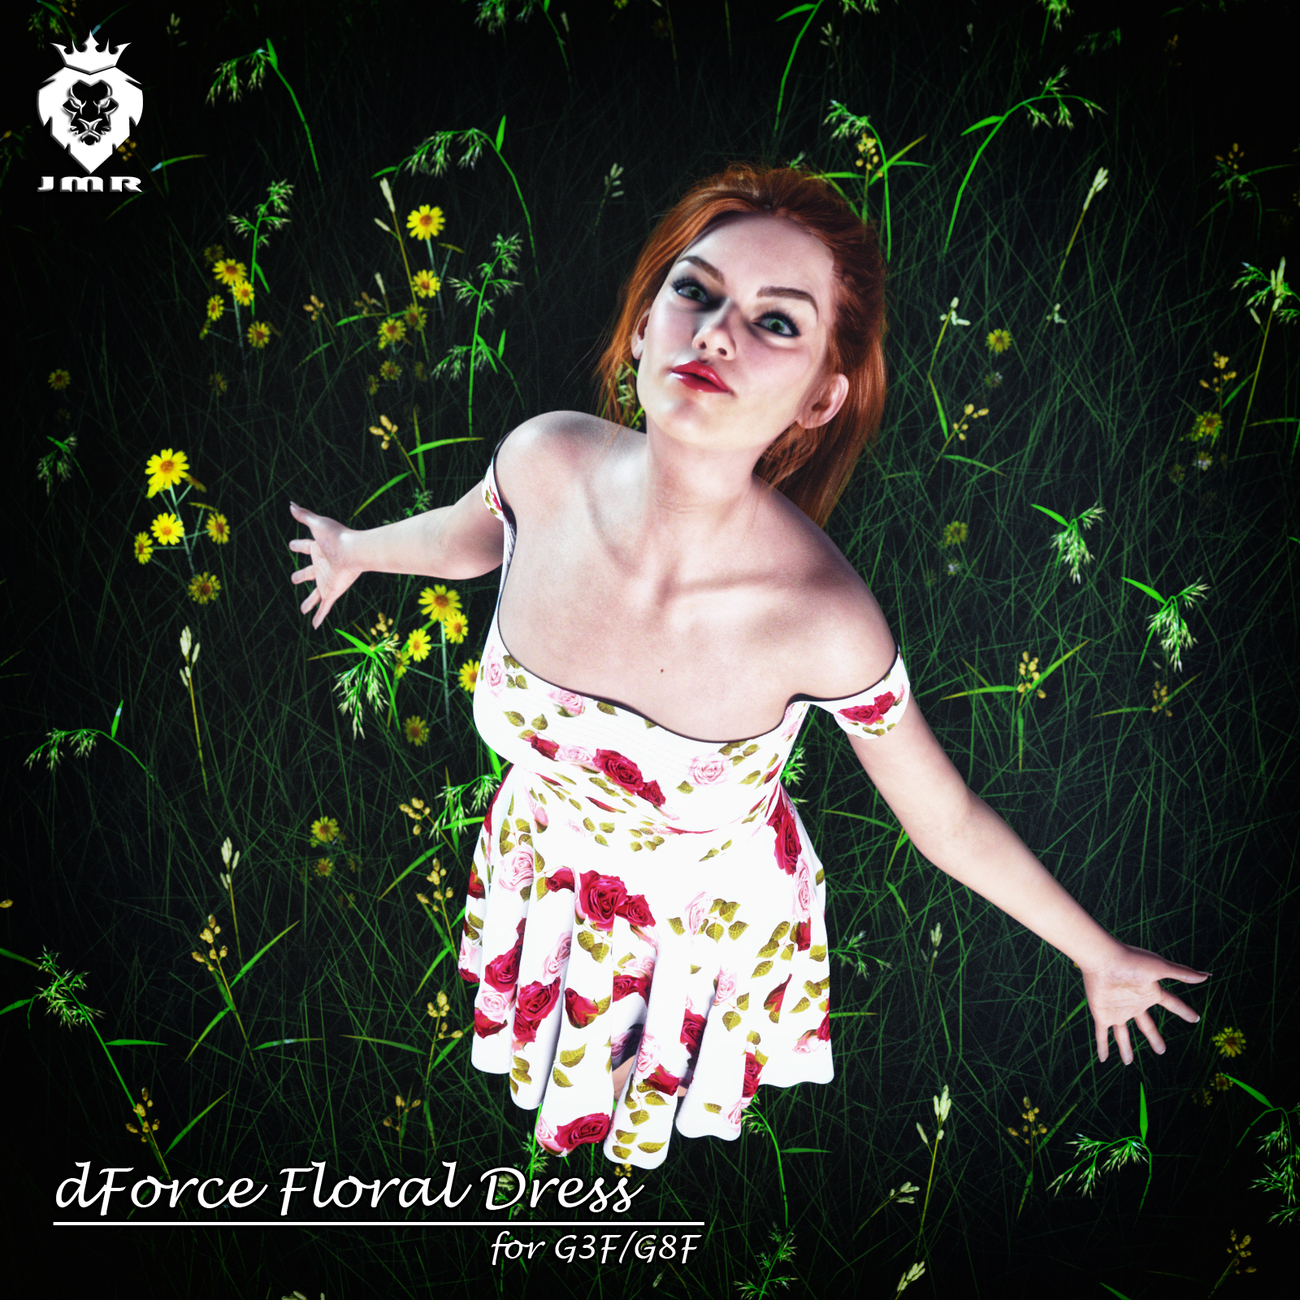 Floral Dress by JaMaRe